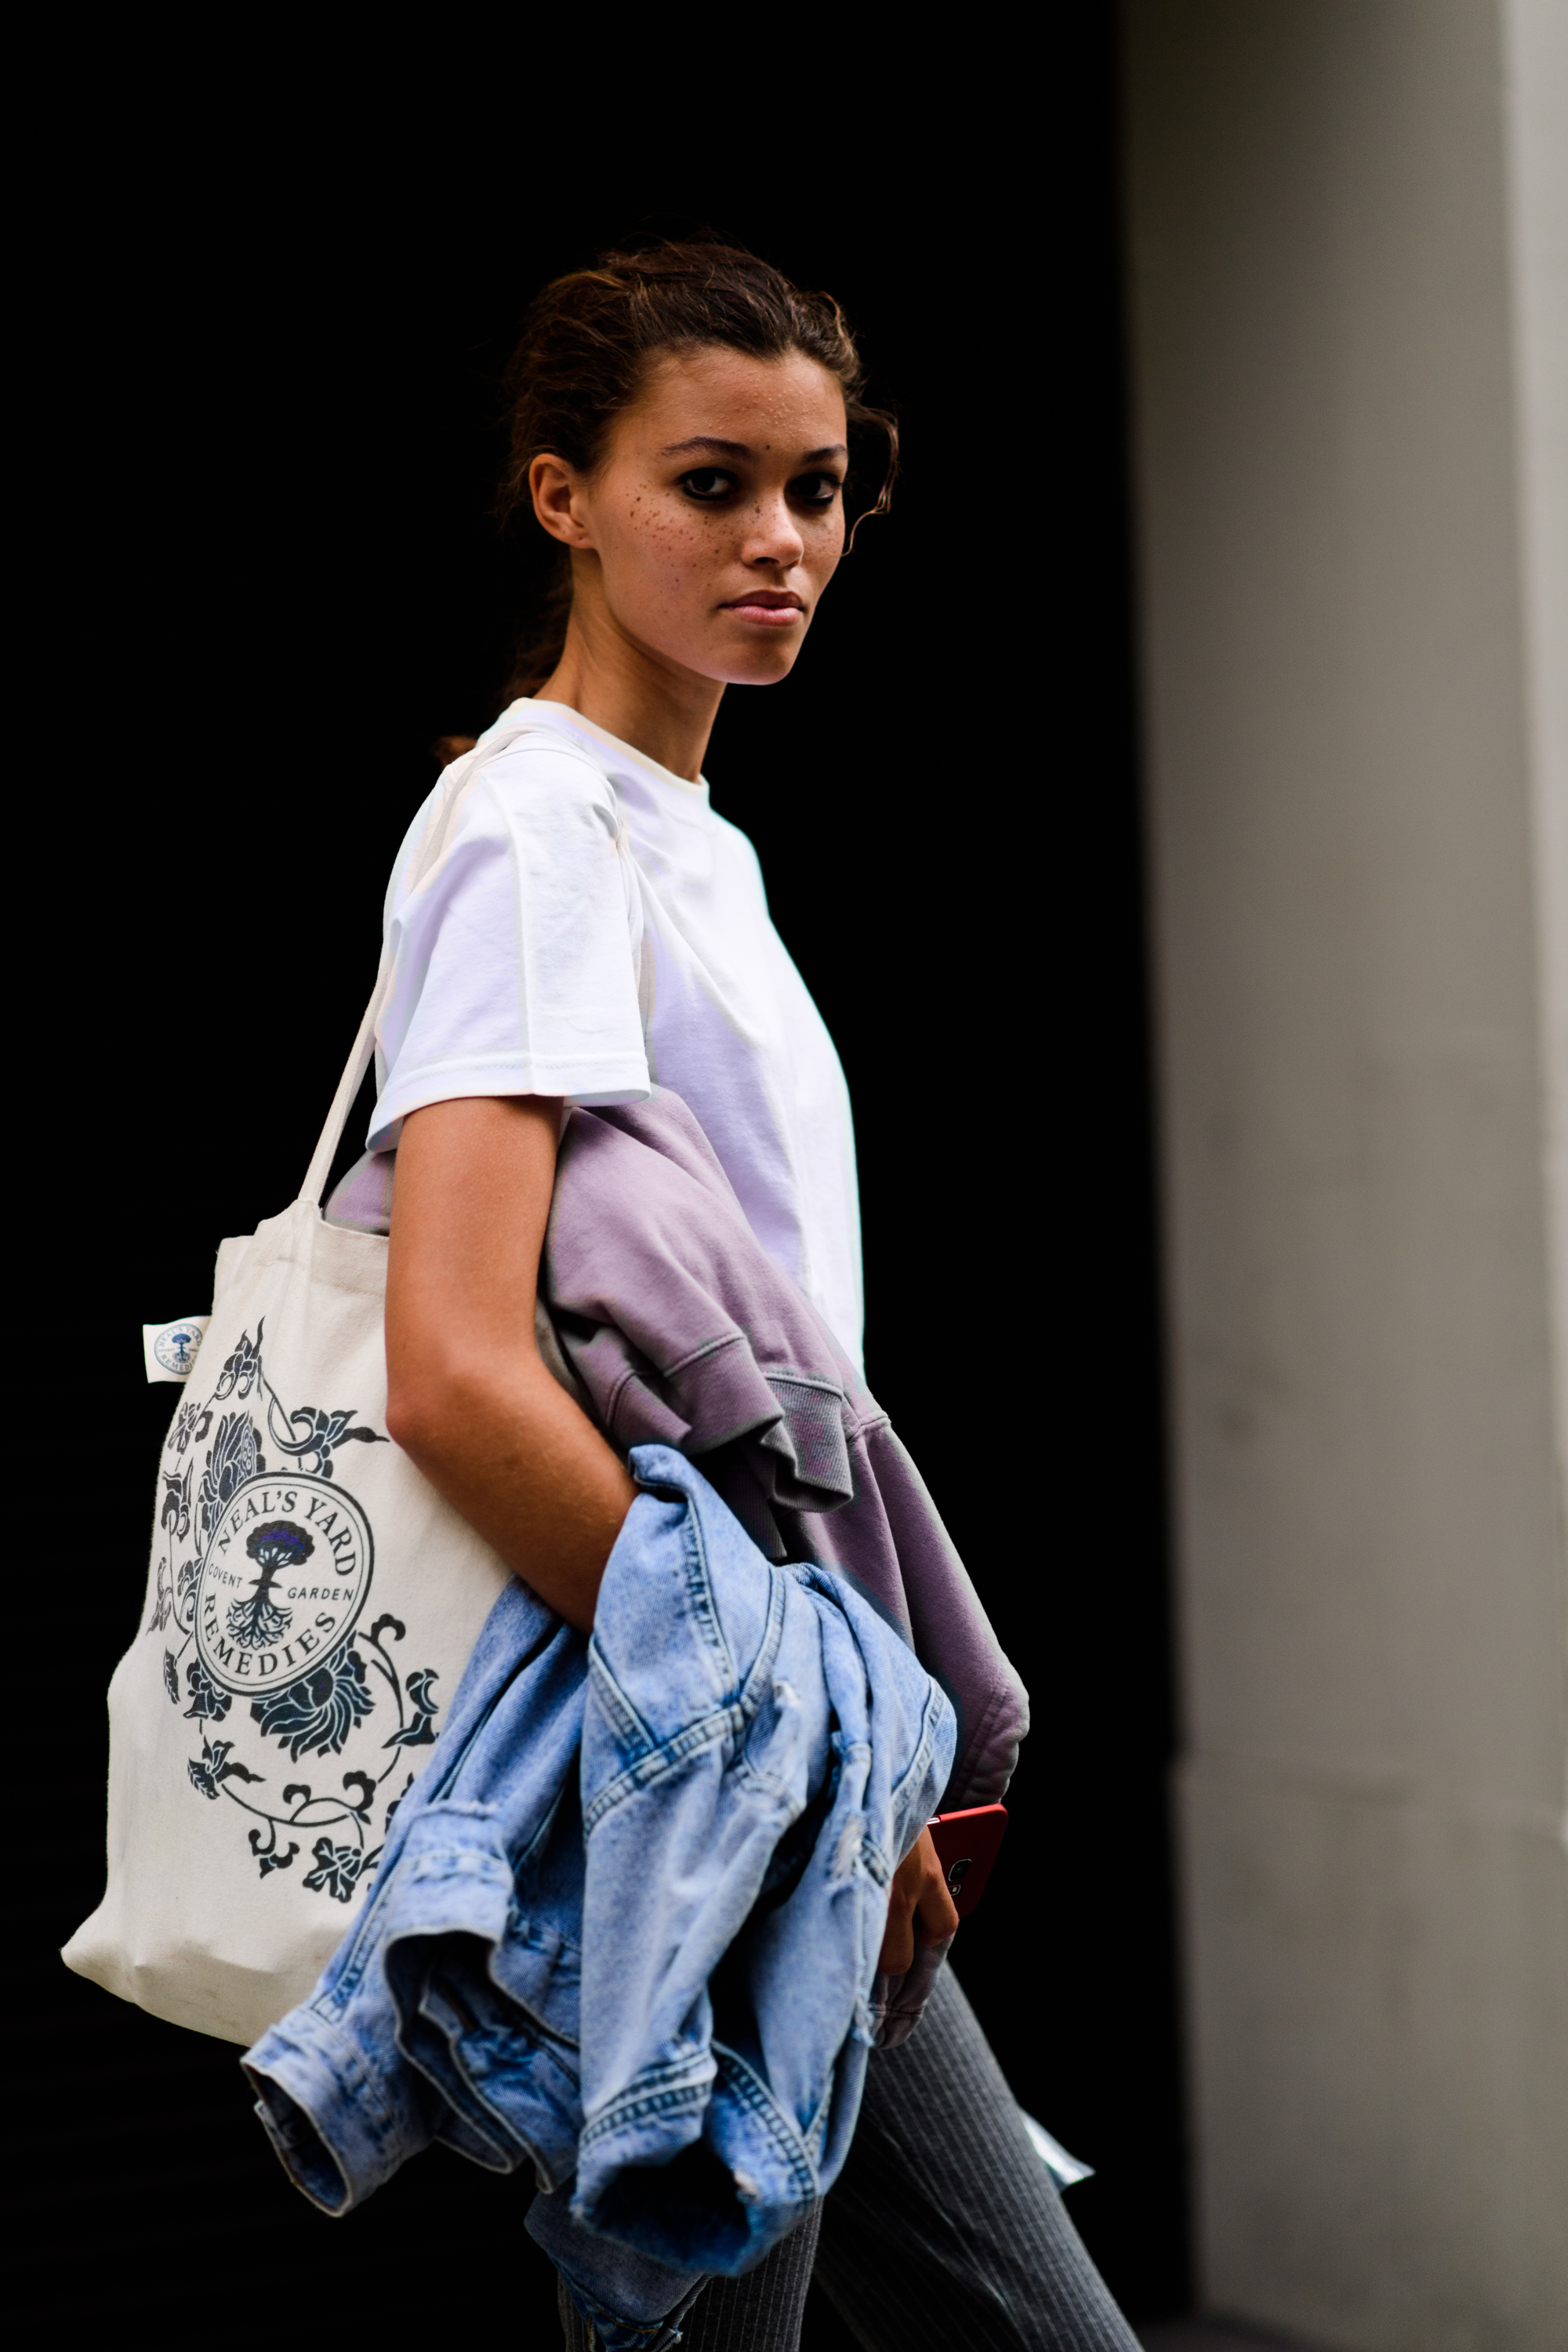 london-lfw-street-style-ss18-day-1-tyler-joe-153-1505753307